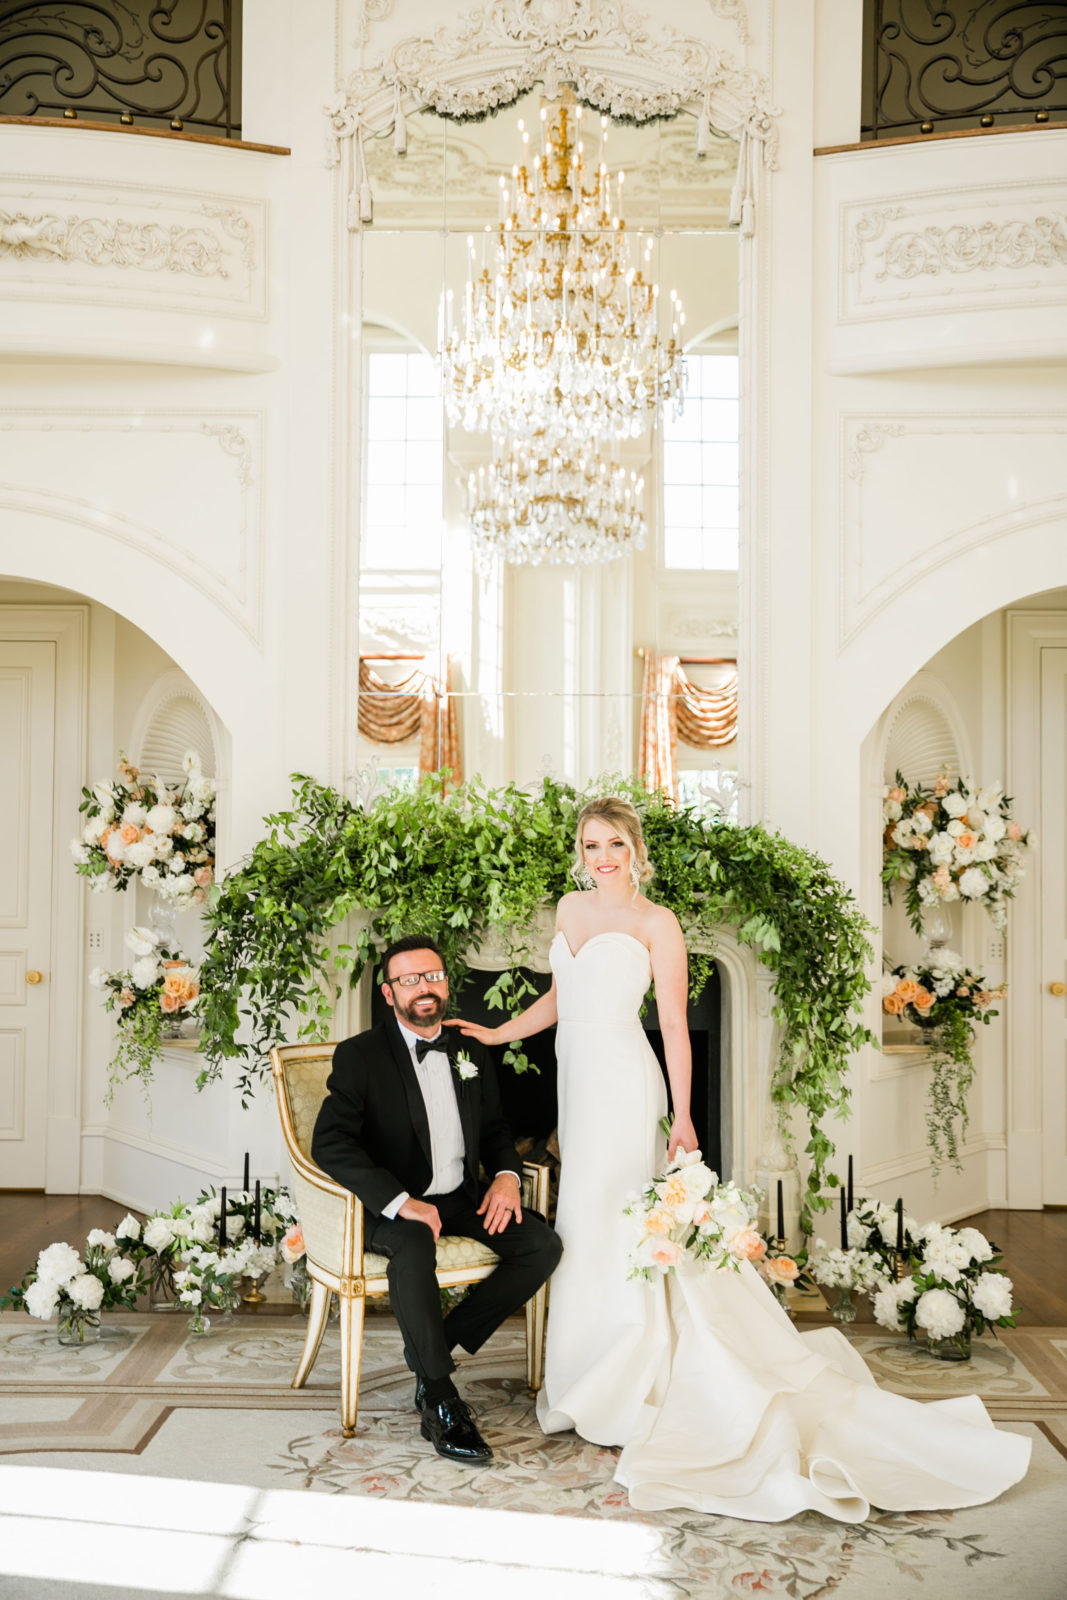 Wedding floral design ideas: Sophisticated and Chic wedding inspiration on Alexa Kay Events